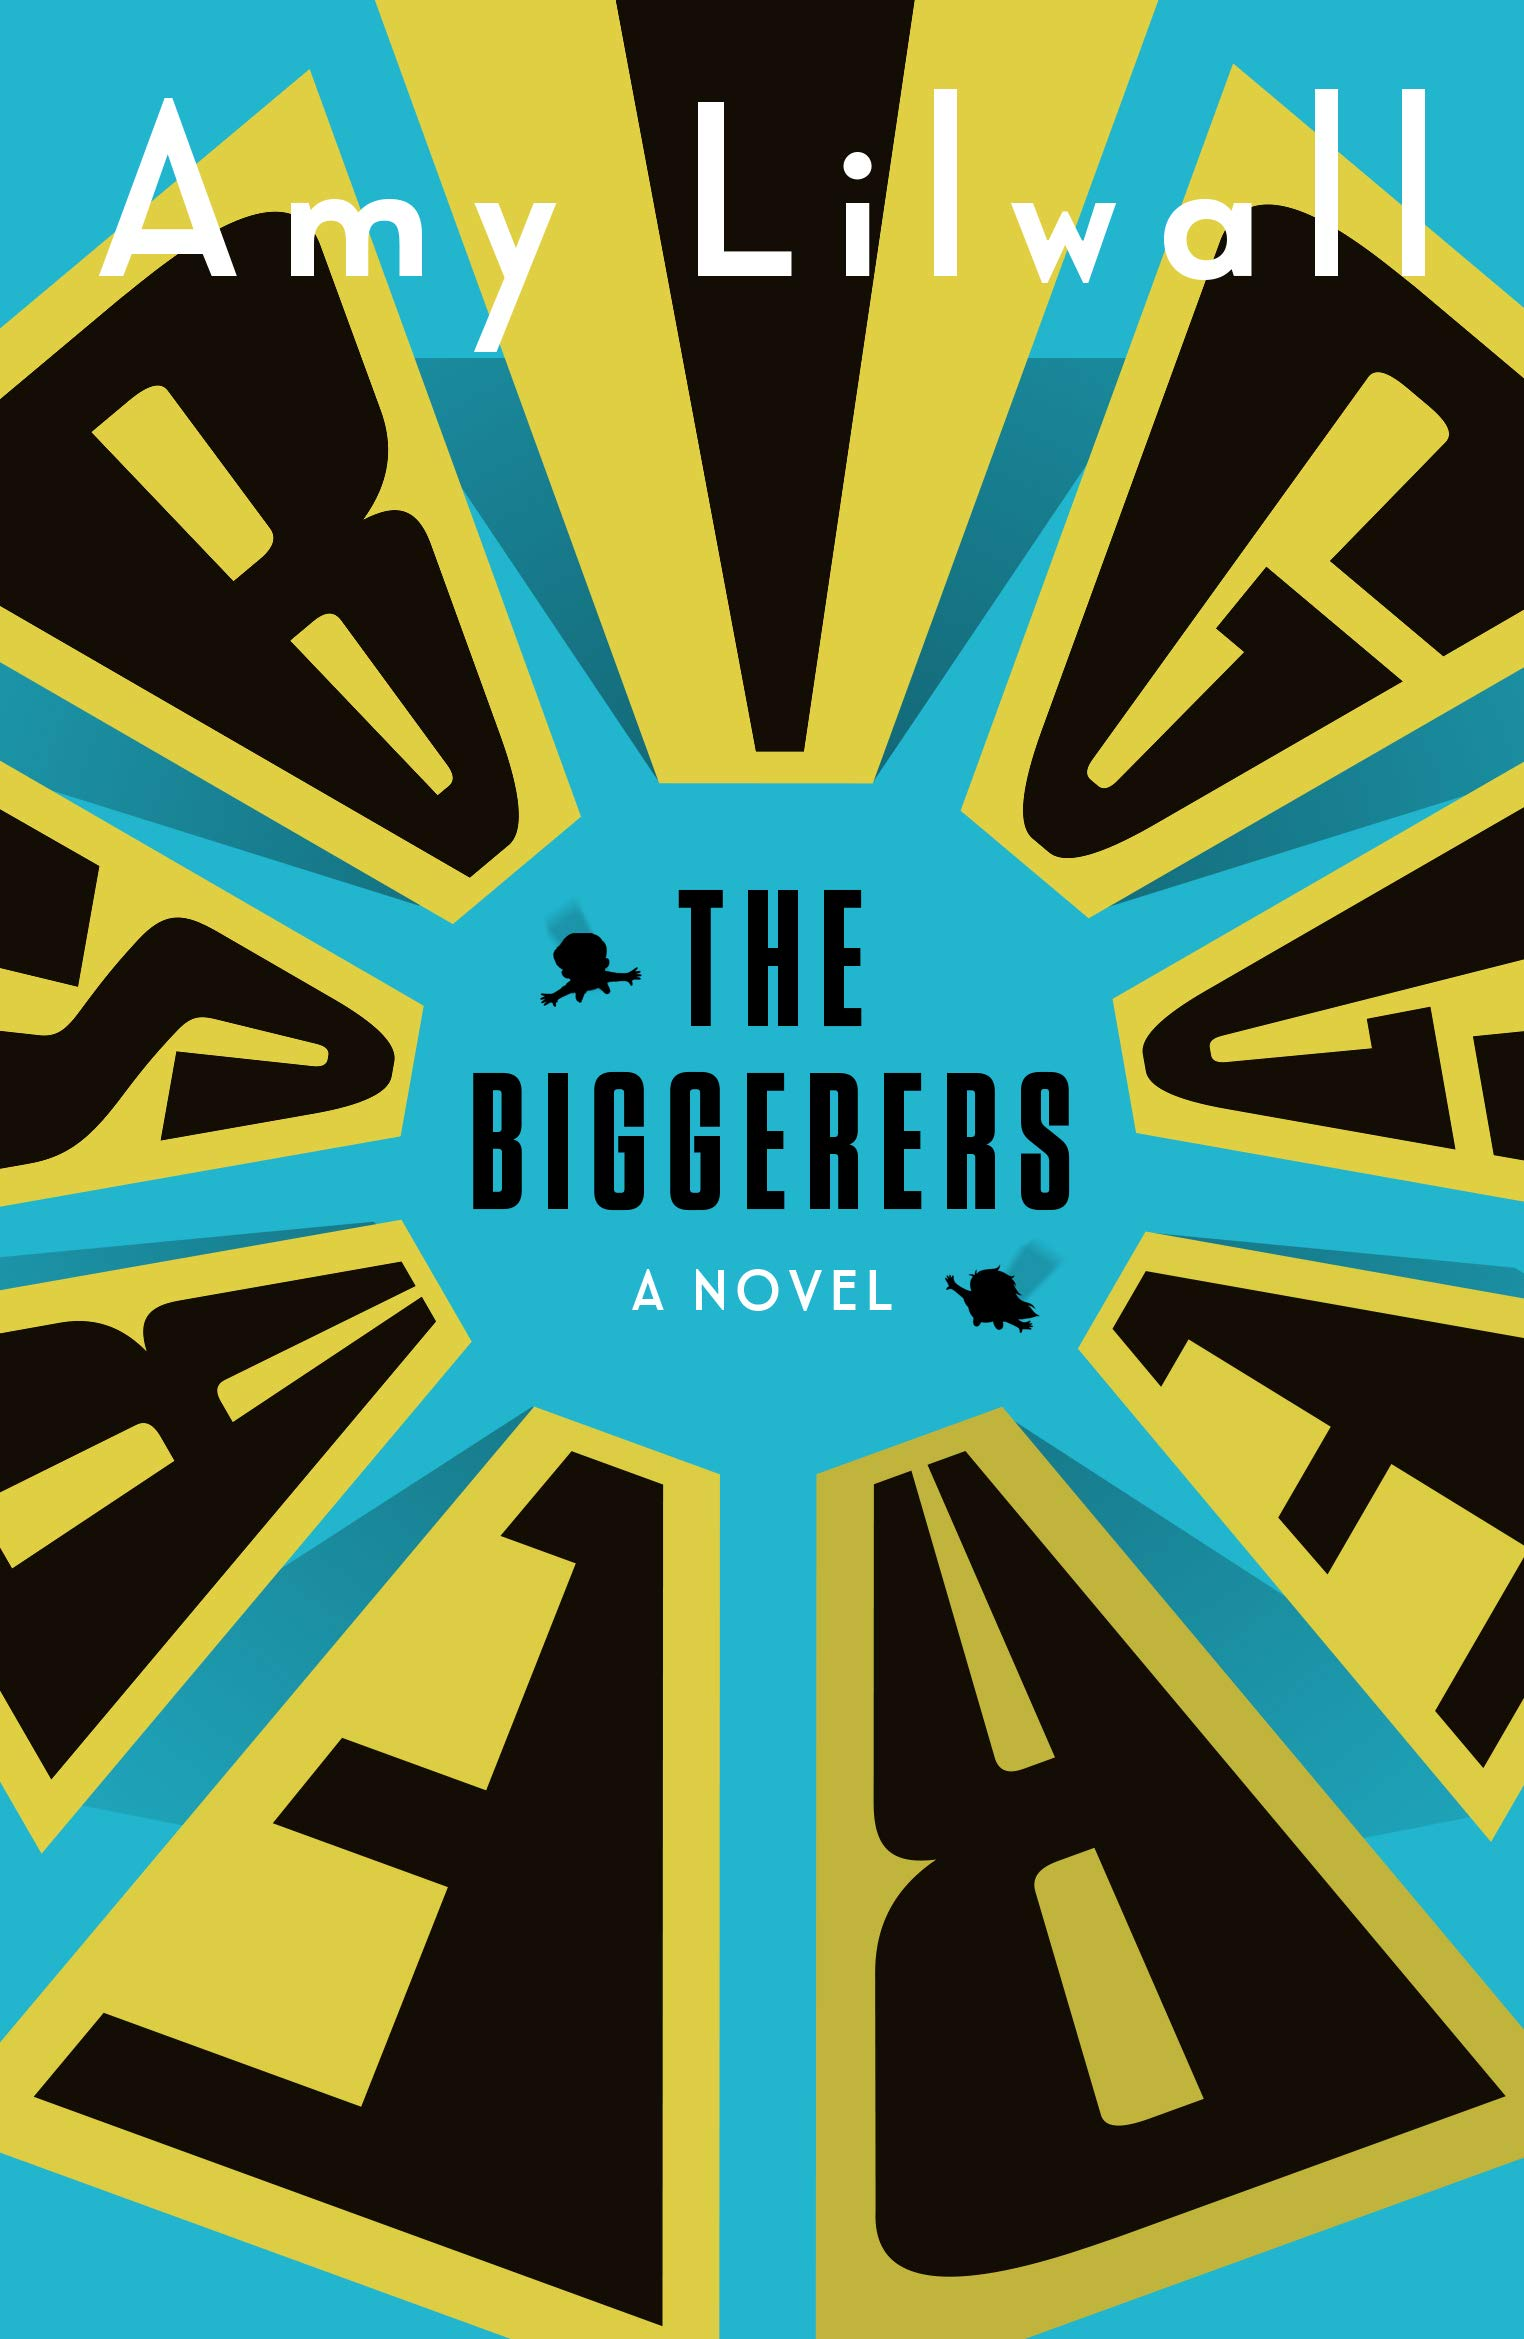 Lilwall, THE BIGGERERS, US pbk cover.jpg